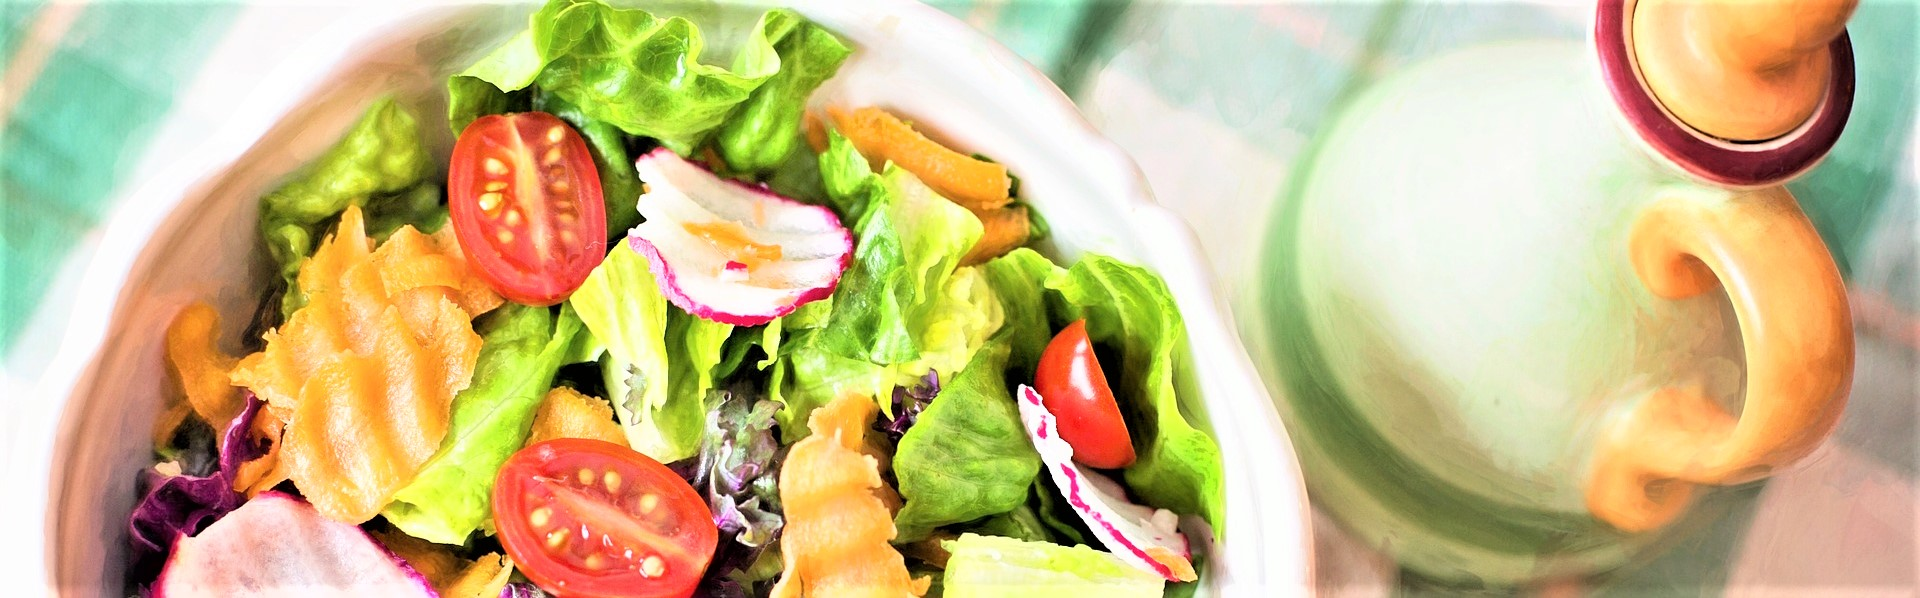 Healthy Vegetable Salad | Breast Cancer Car Donations